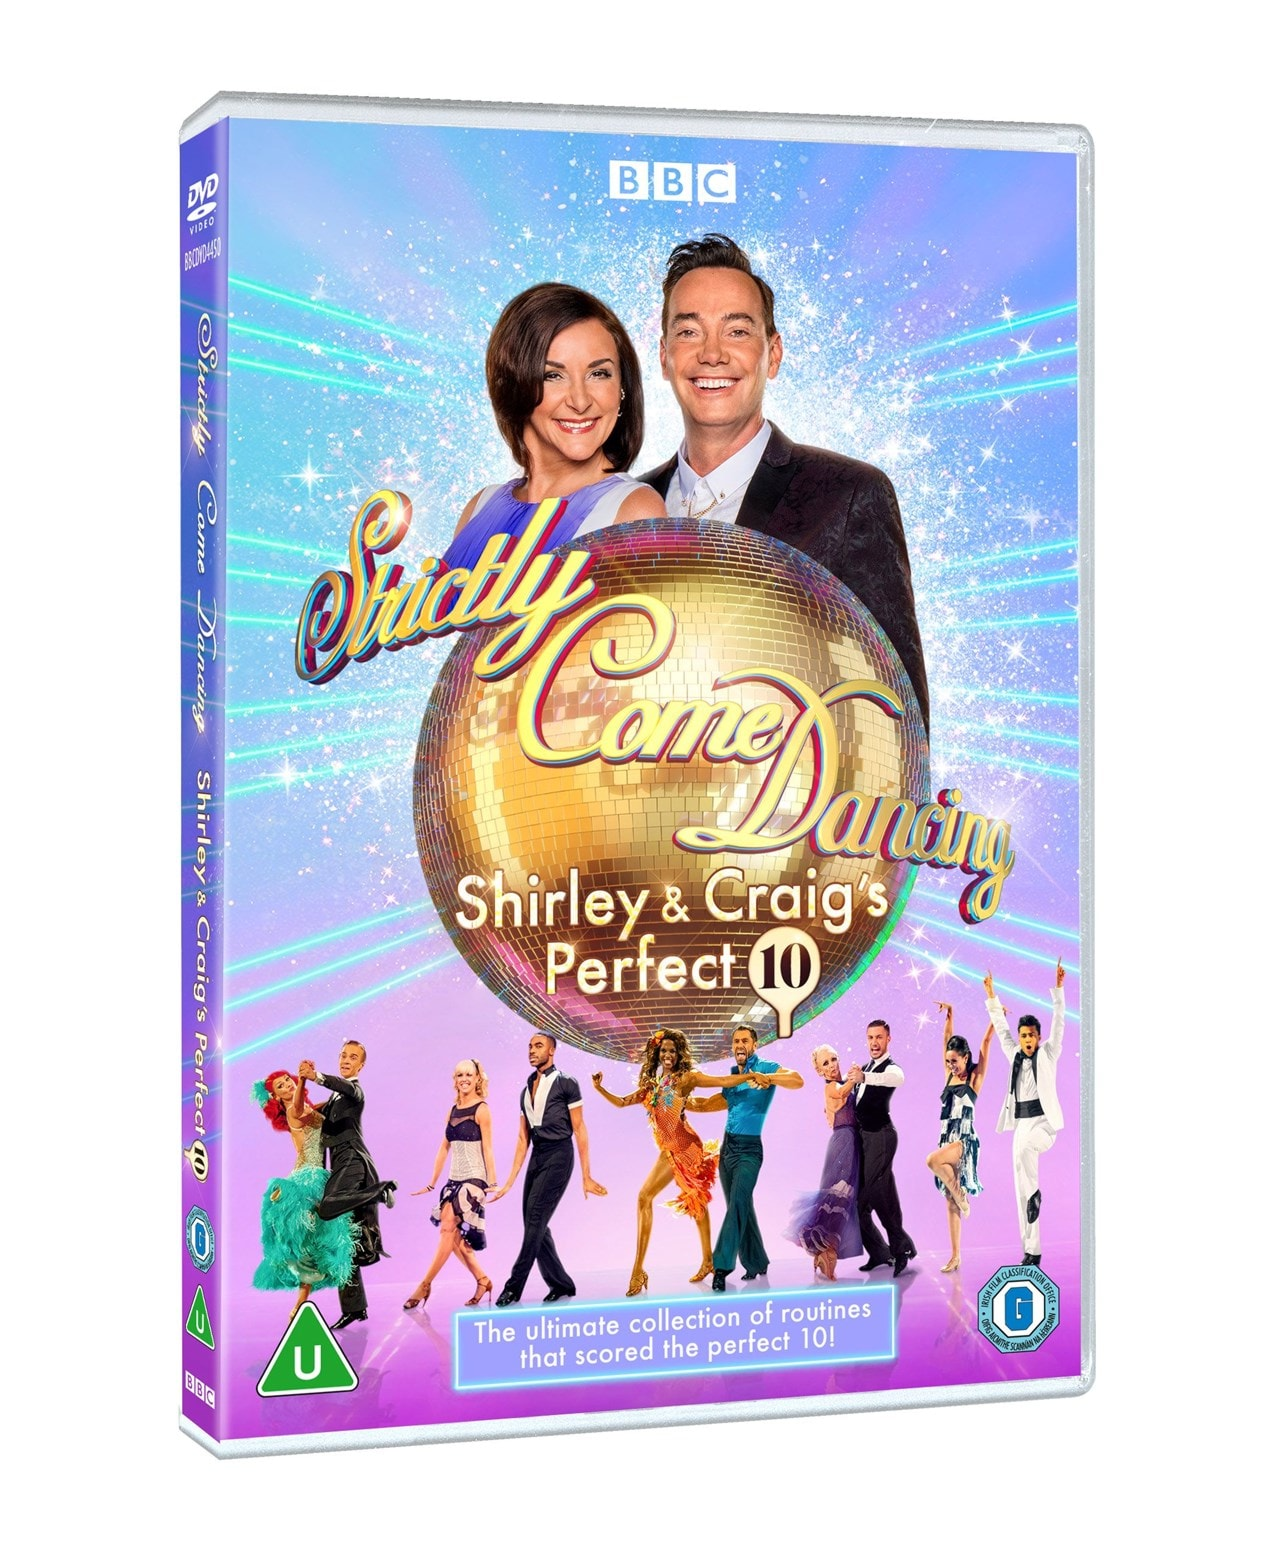 Strictly Come Dancing: Shirley and Craig's Perfect 10 - 2